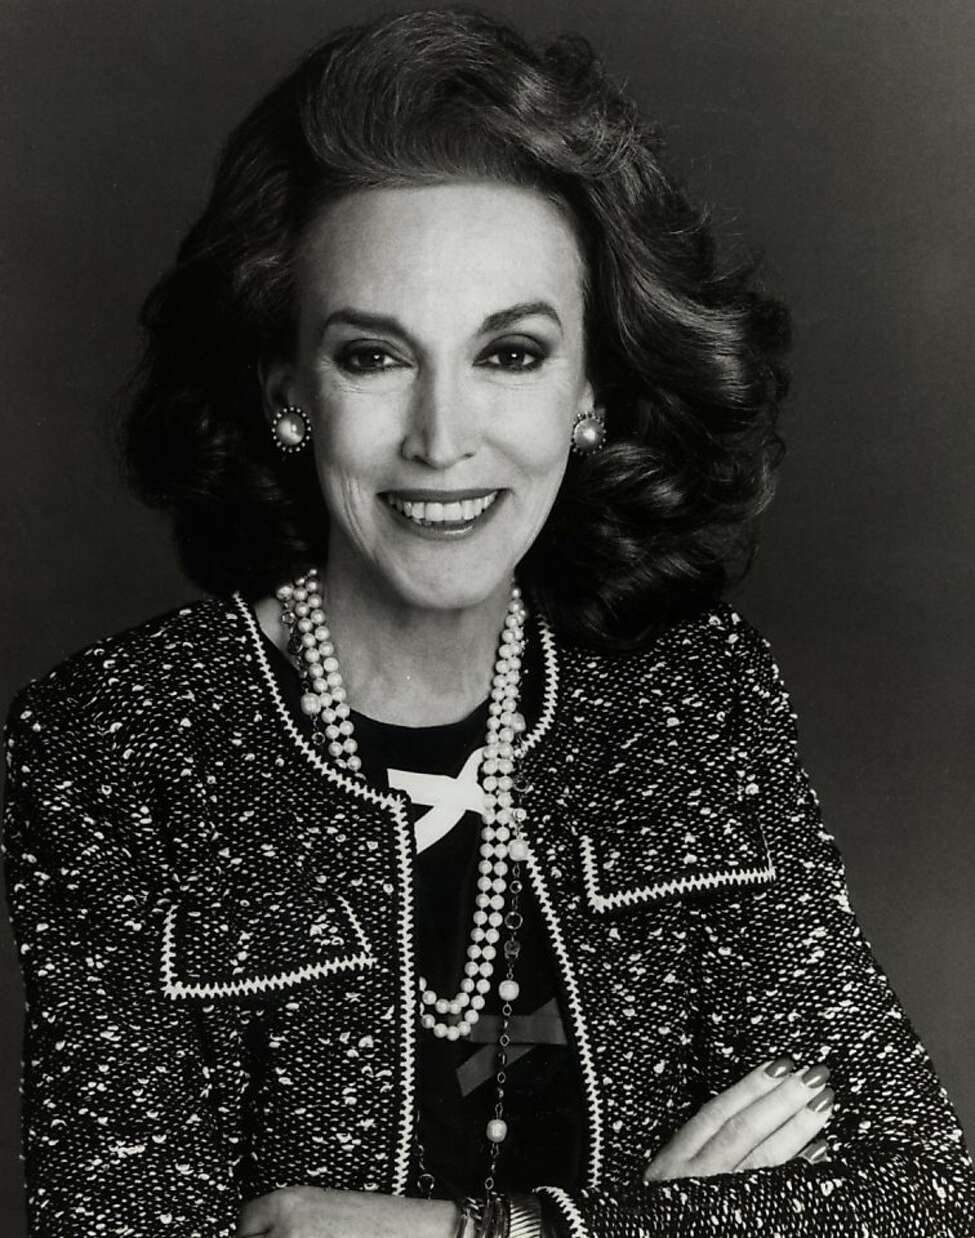 Helen Gurley Brown redefined womanhood for many women and built Cosmopolitan Into global media juggernaut.